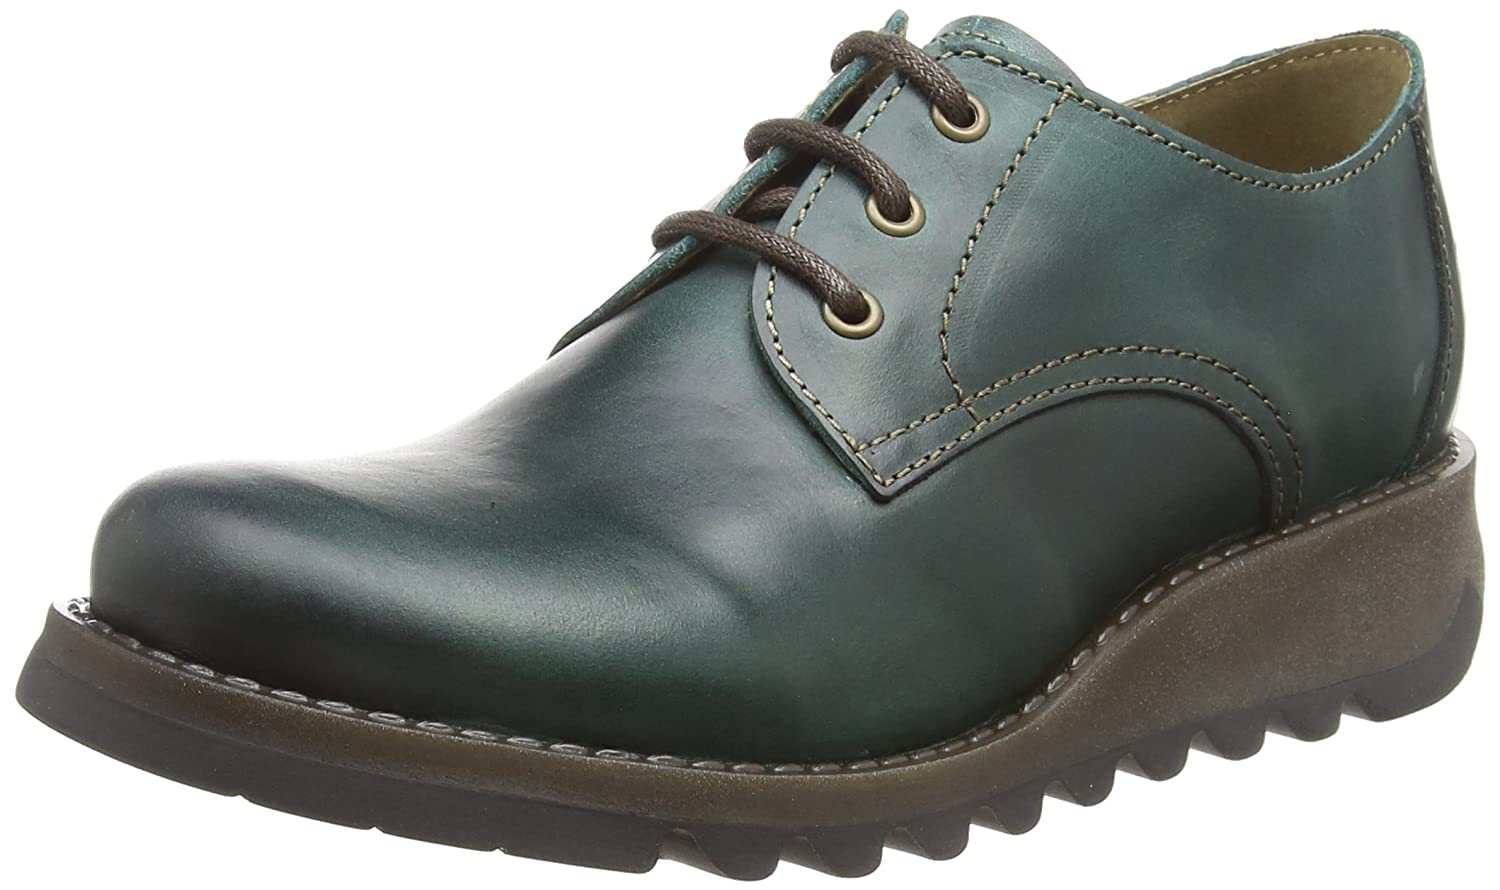 Fly Femme London Simb389fly, Brogues Femme Brogues Vert (Petrol (Petrol 005) 79f73e9 - therethere.space